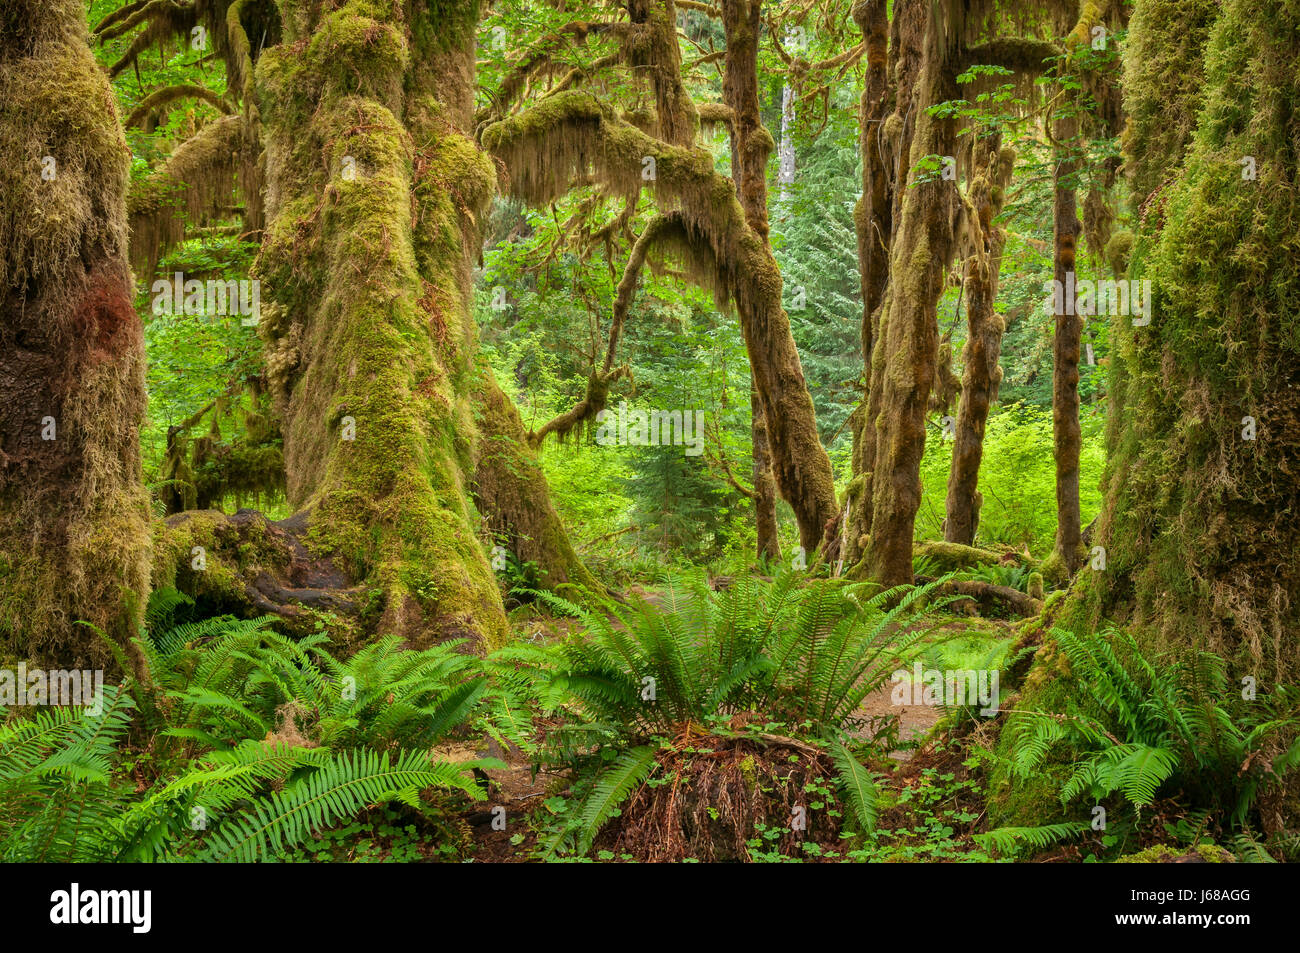 Ferns, mosses and Bigleaf maple trees, Hall of Mosses Trail, Hoh Rainforest, Olympic National Park, Washington. - Stock Image